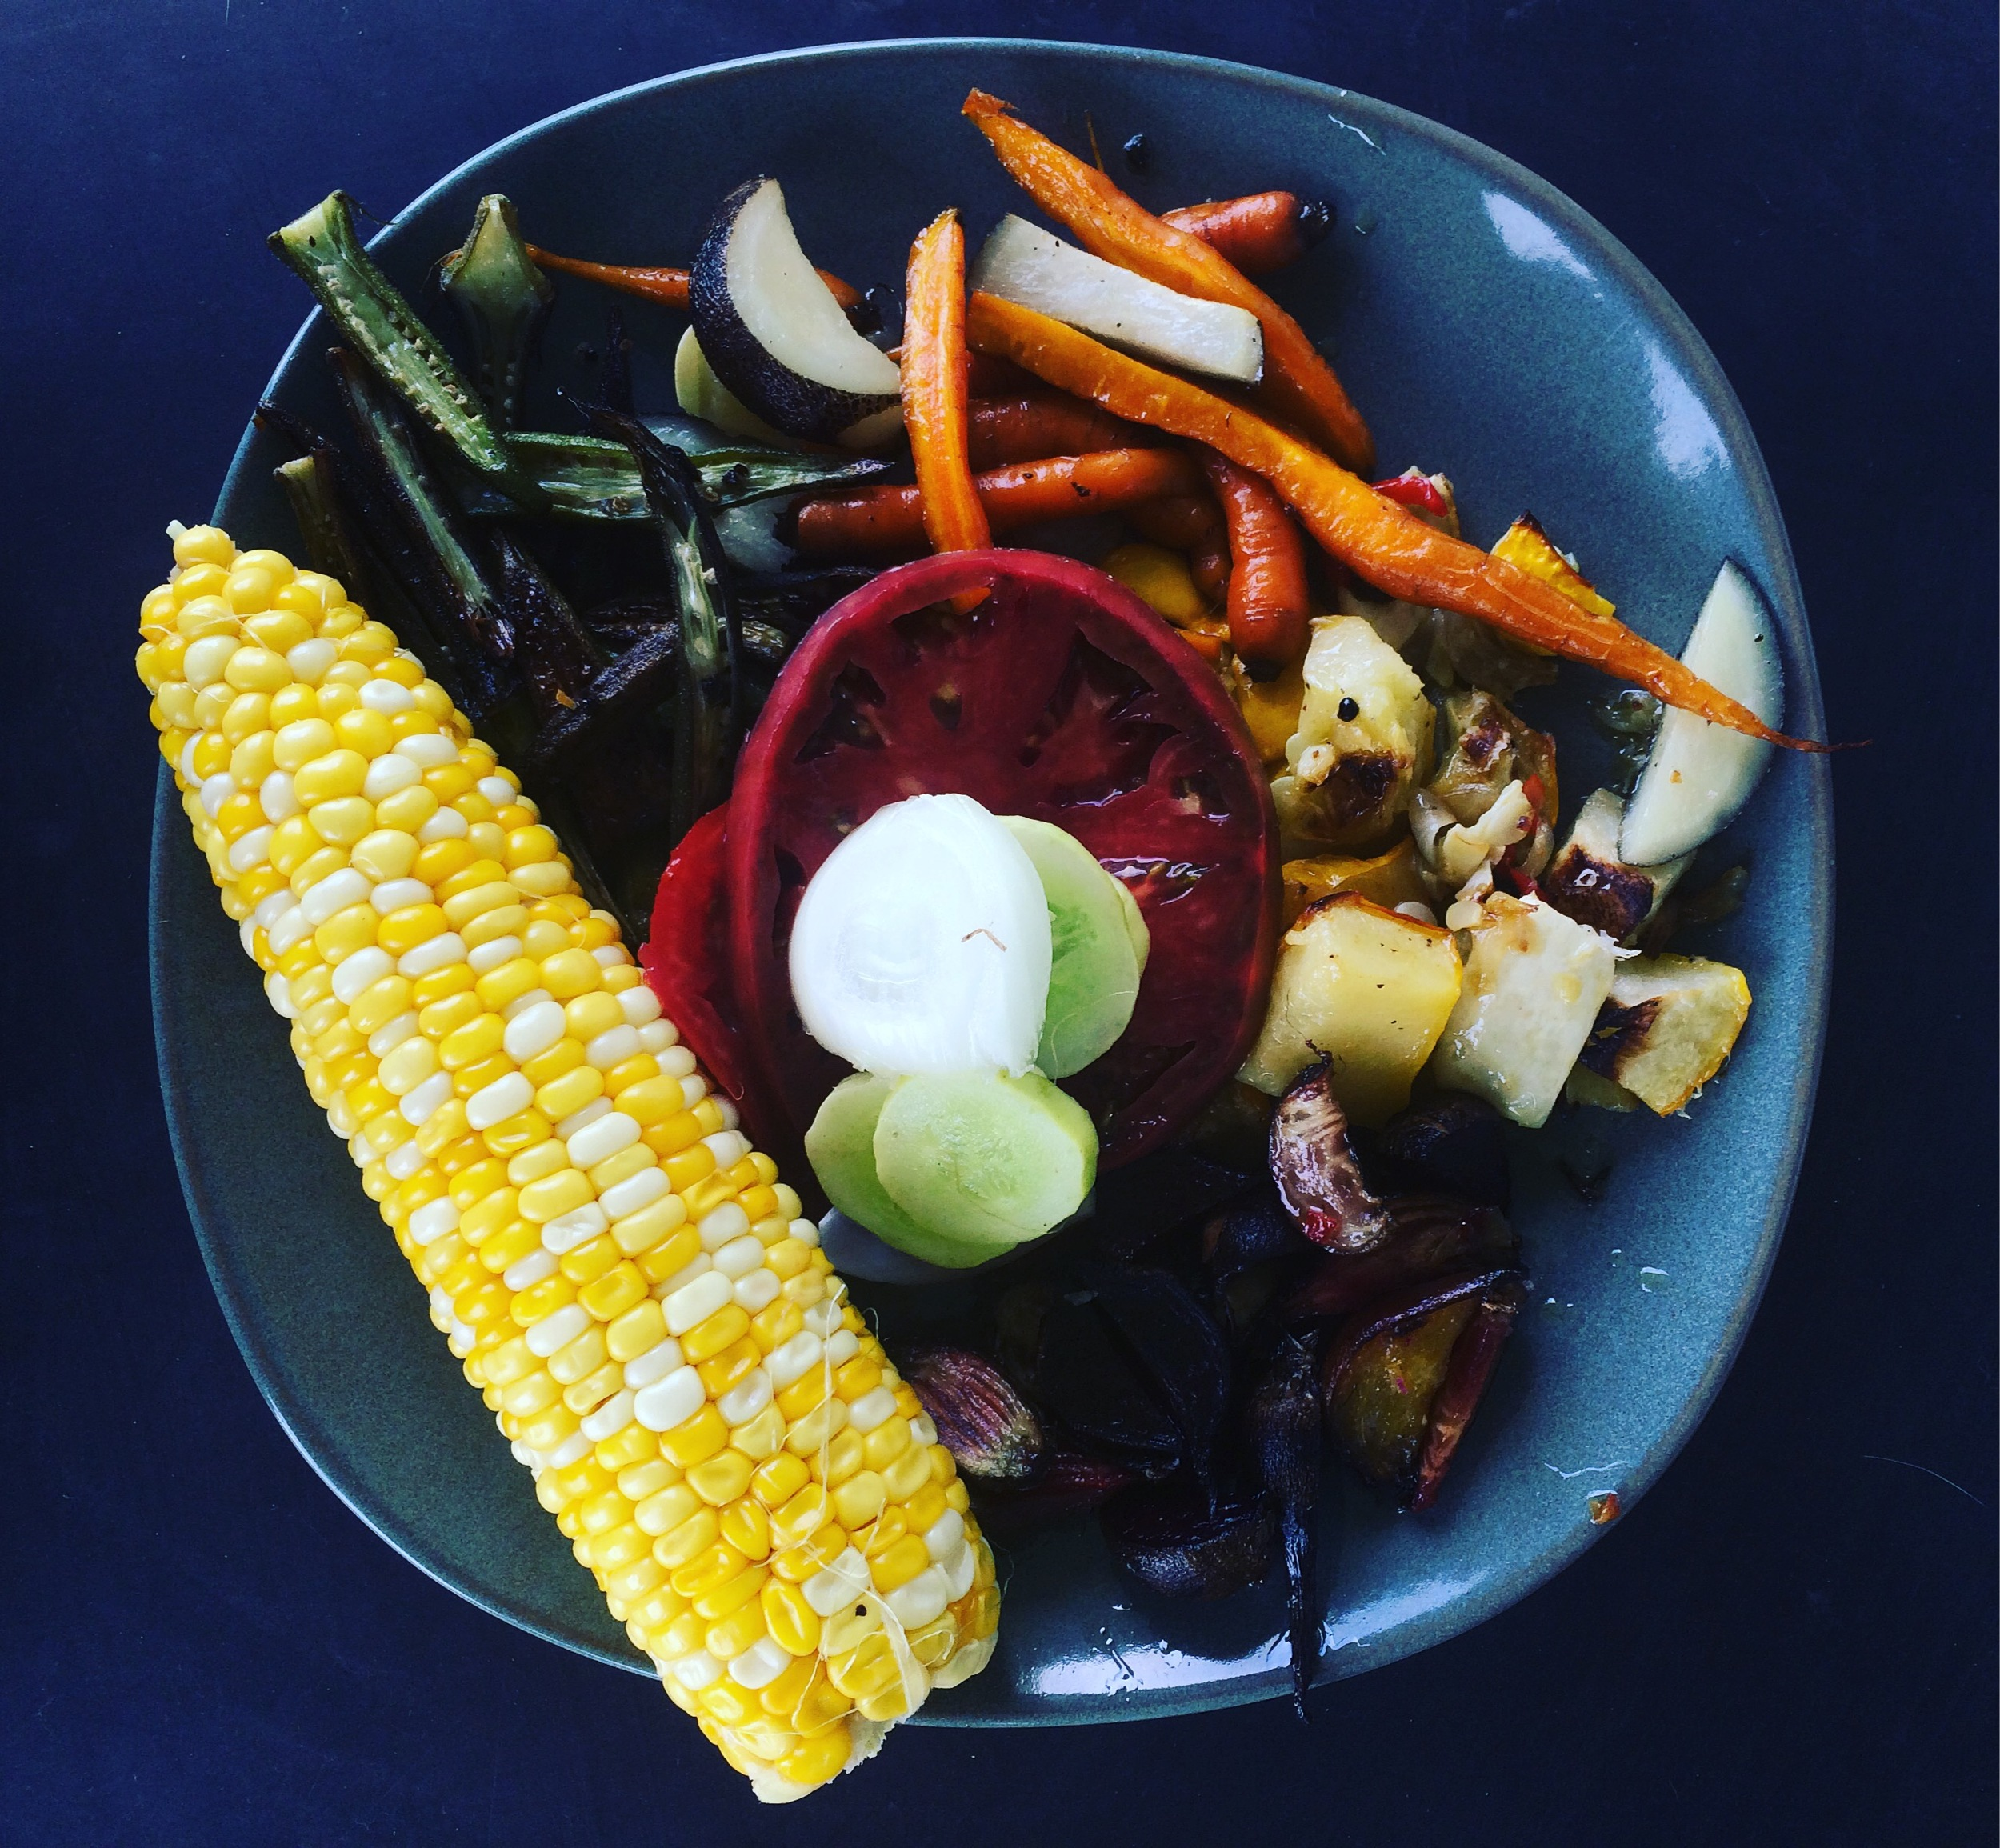 Lunch yesterday included corn on the cob, roasted okra, carrots and spanish black radish, peppers and squash, some of the last of the beets, and fresh sliced tomatoes, cucumbers and onion. It was amazing, thanks to my husband,